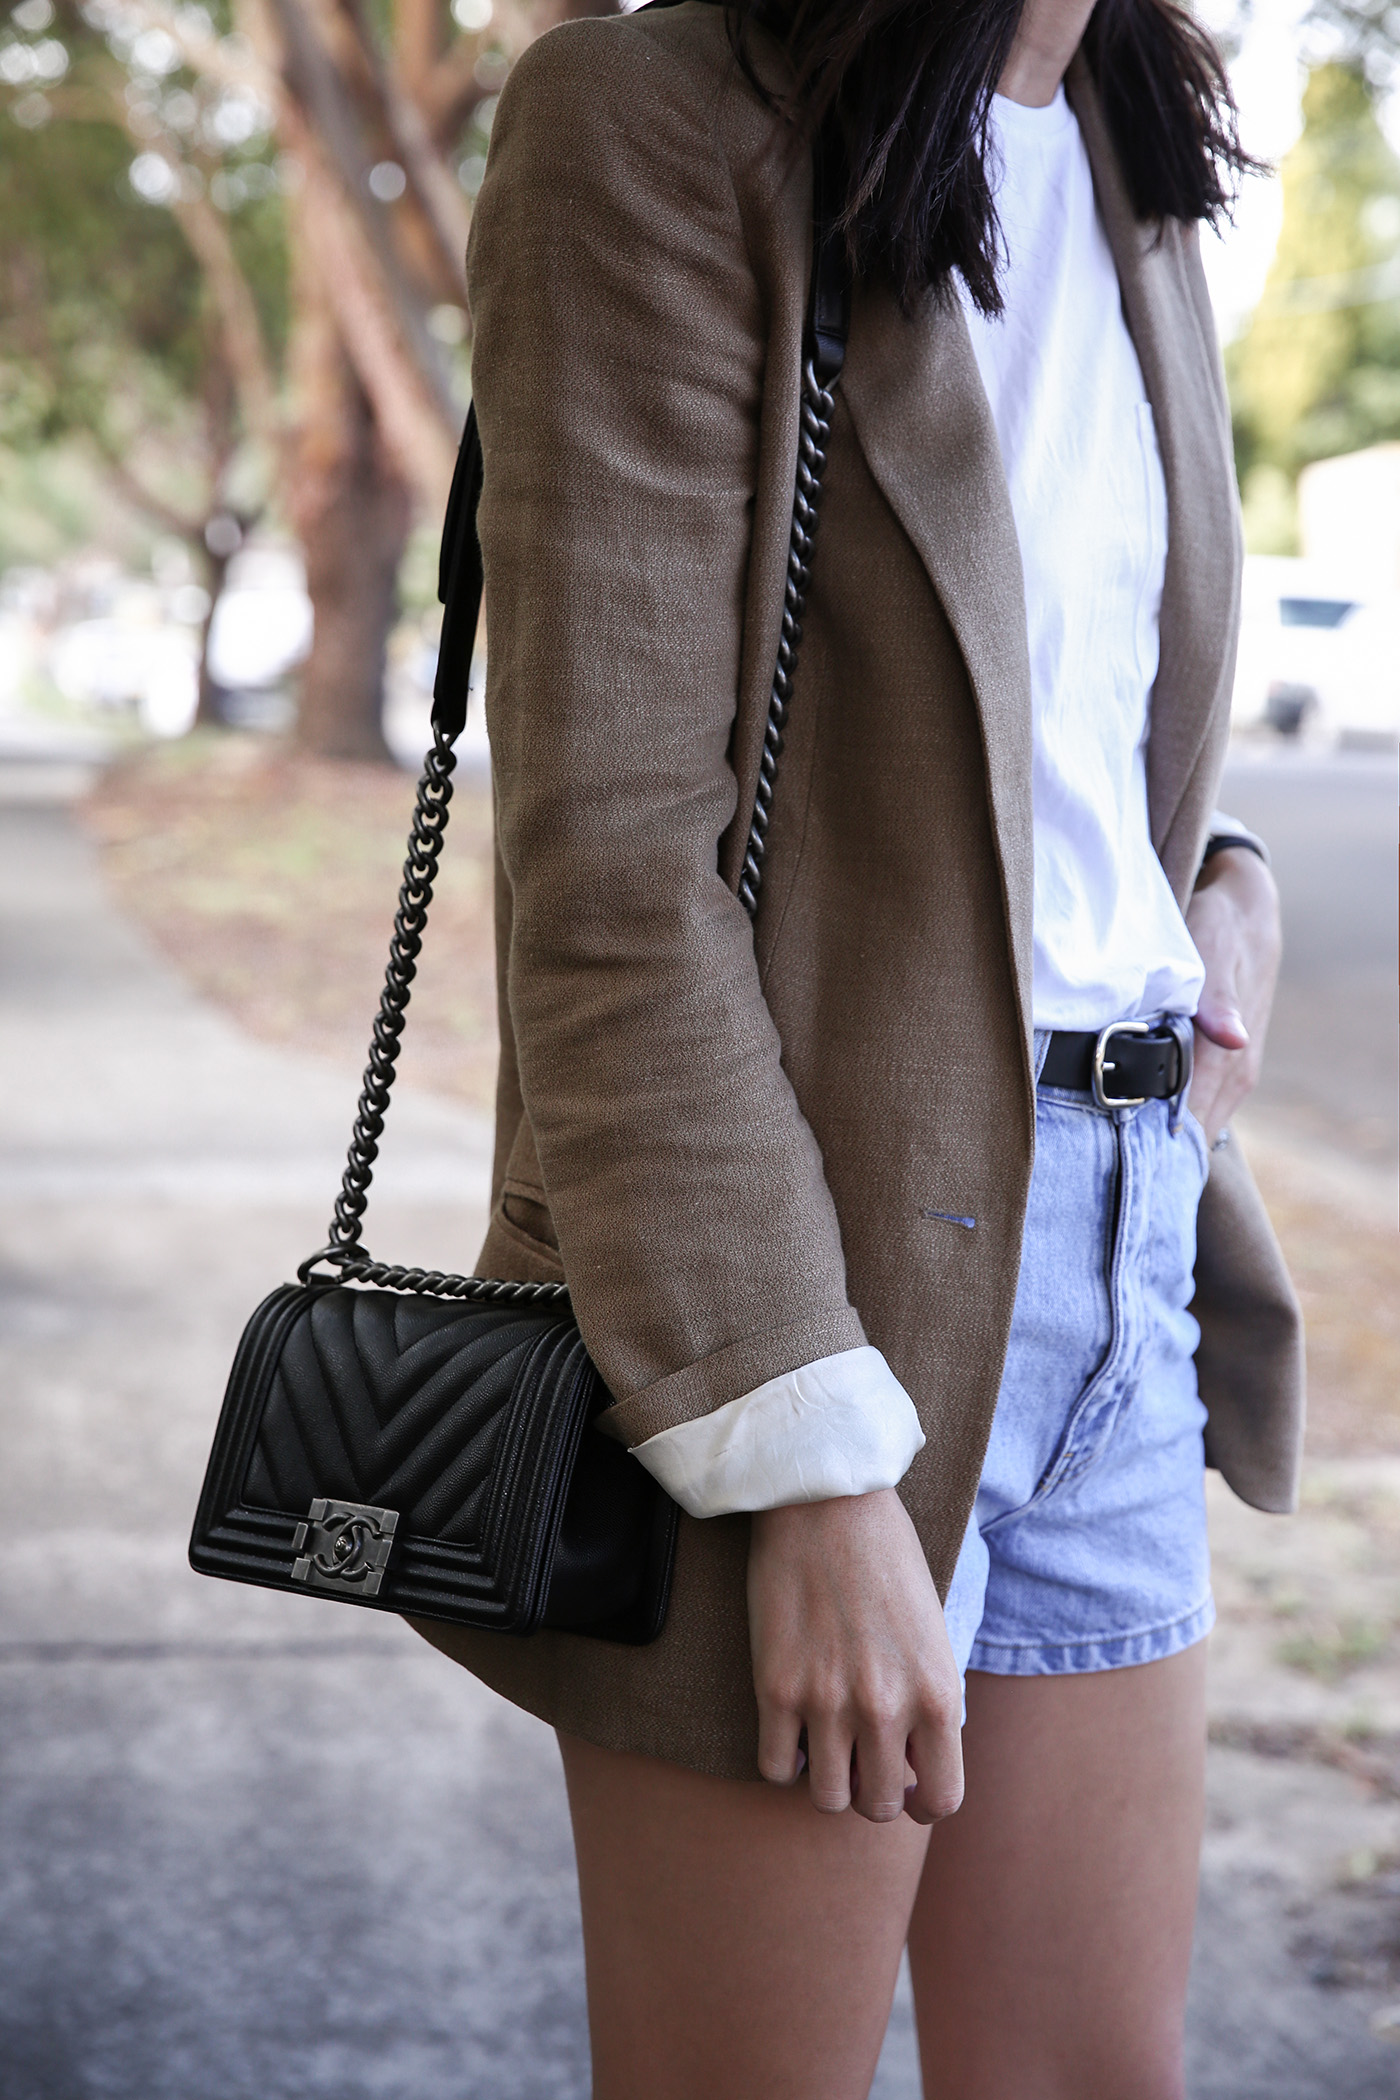 8cc2a846cde4 Chanel Boy Bag Review | Mademoiselle | A Minimalist Fashion Blog